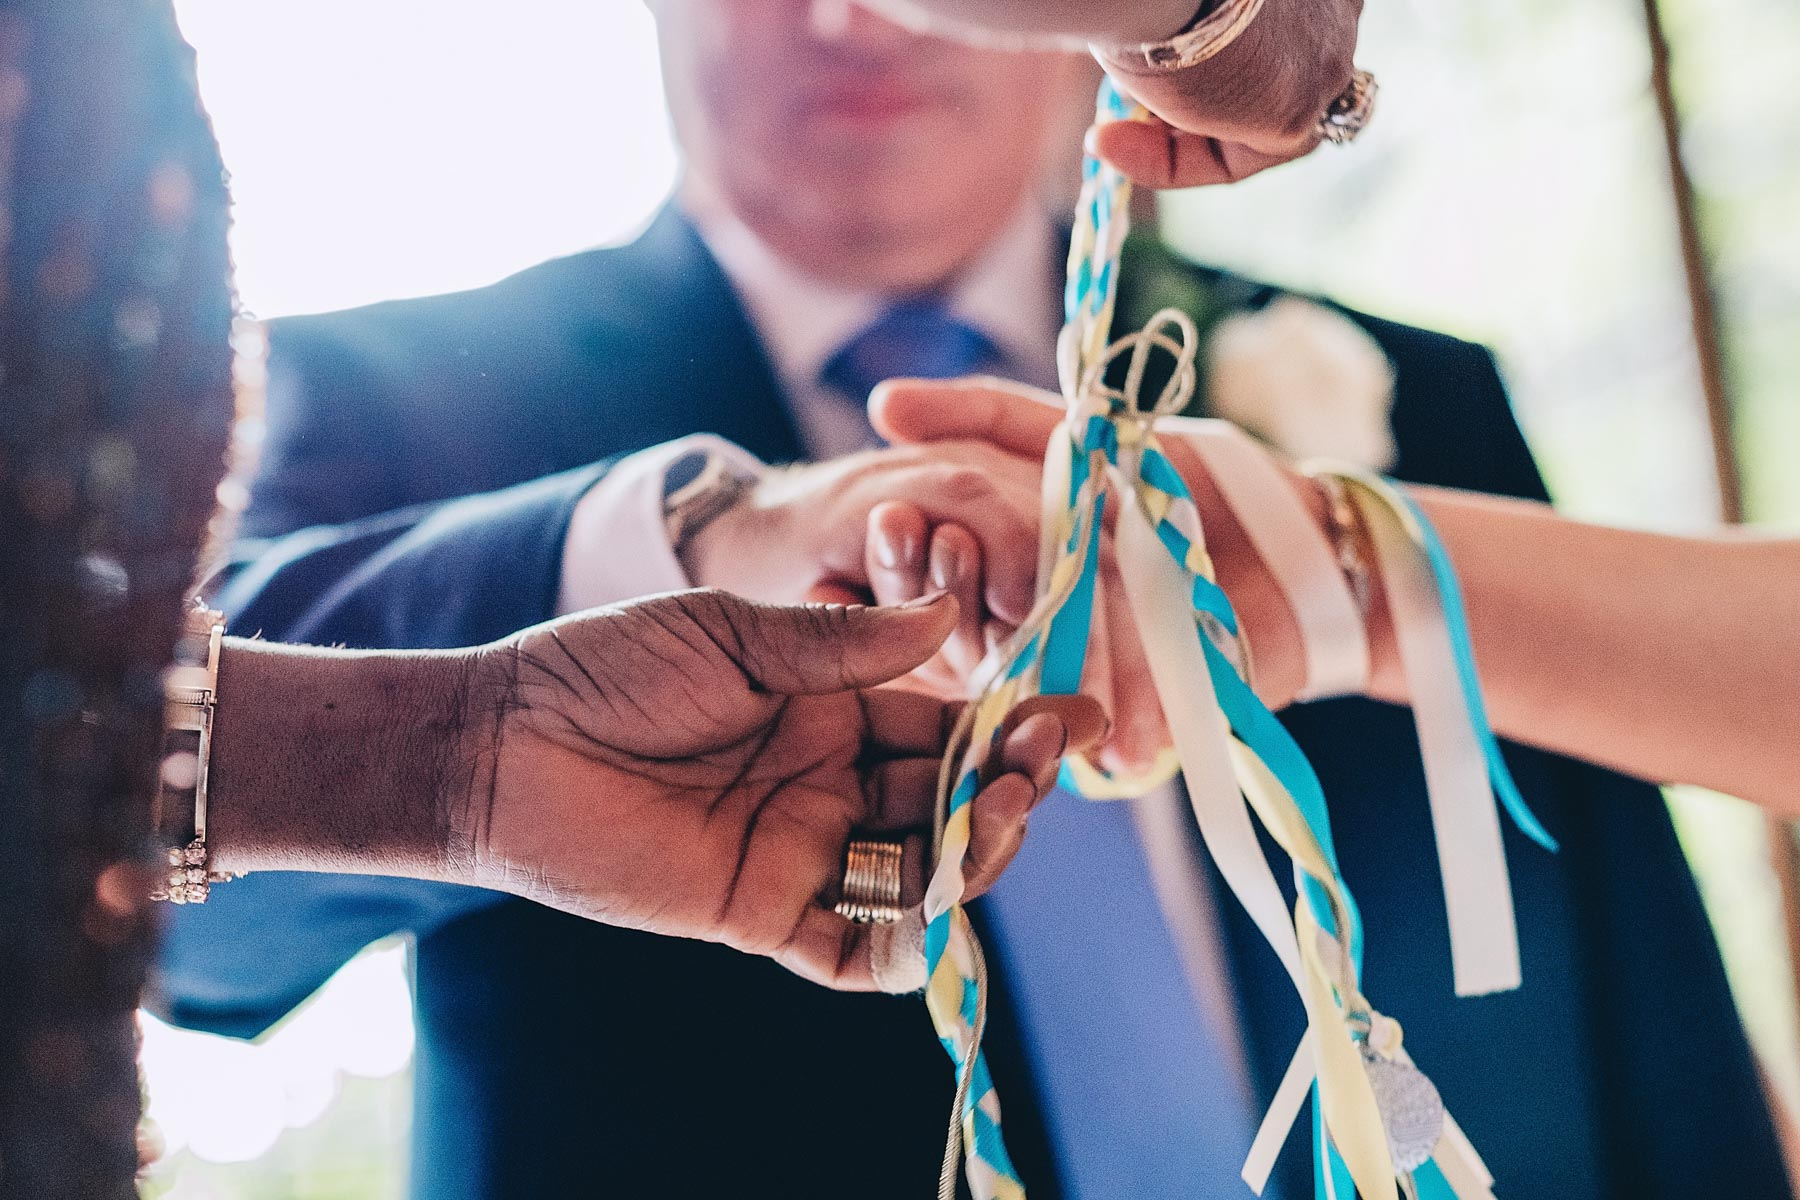 Bride and groom's hands are tied during handfasting